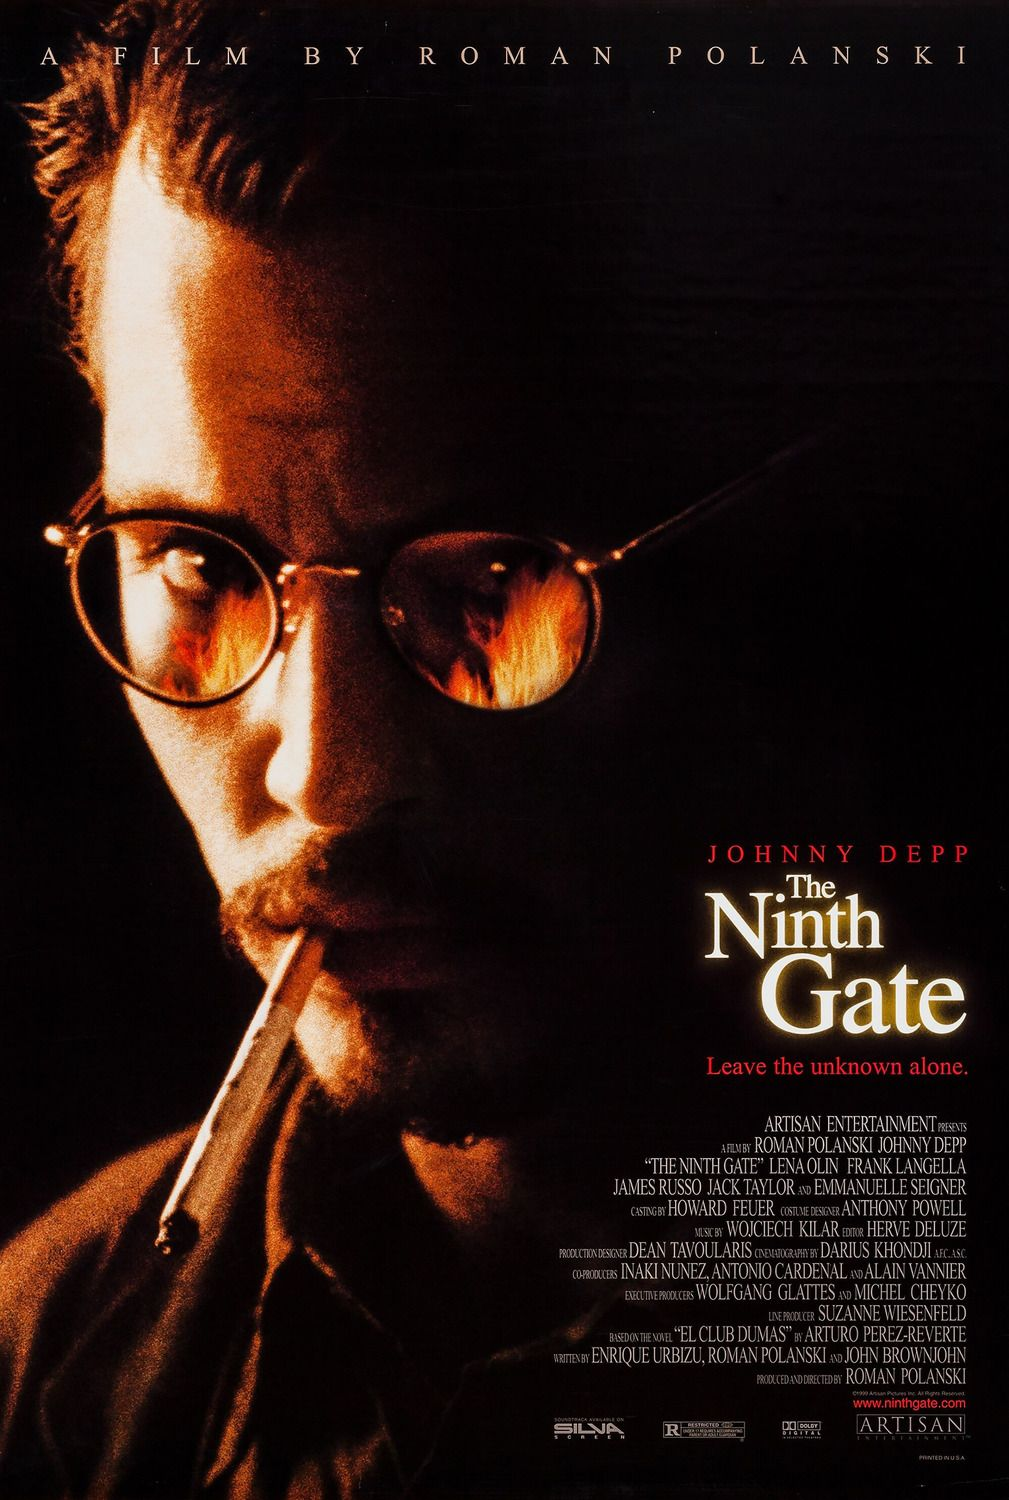 Return To The Main Poster Page For The Ninth Gate 3 Of 4 The Ninth Gate The Nines Johnny Depp